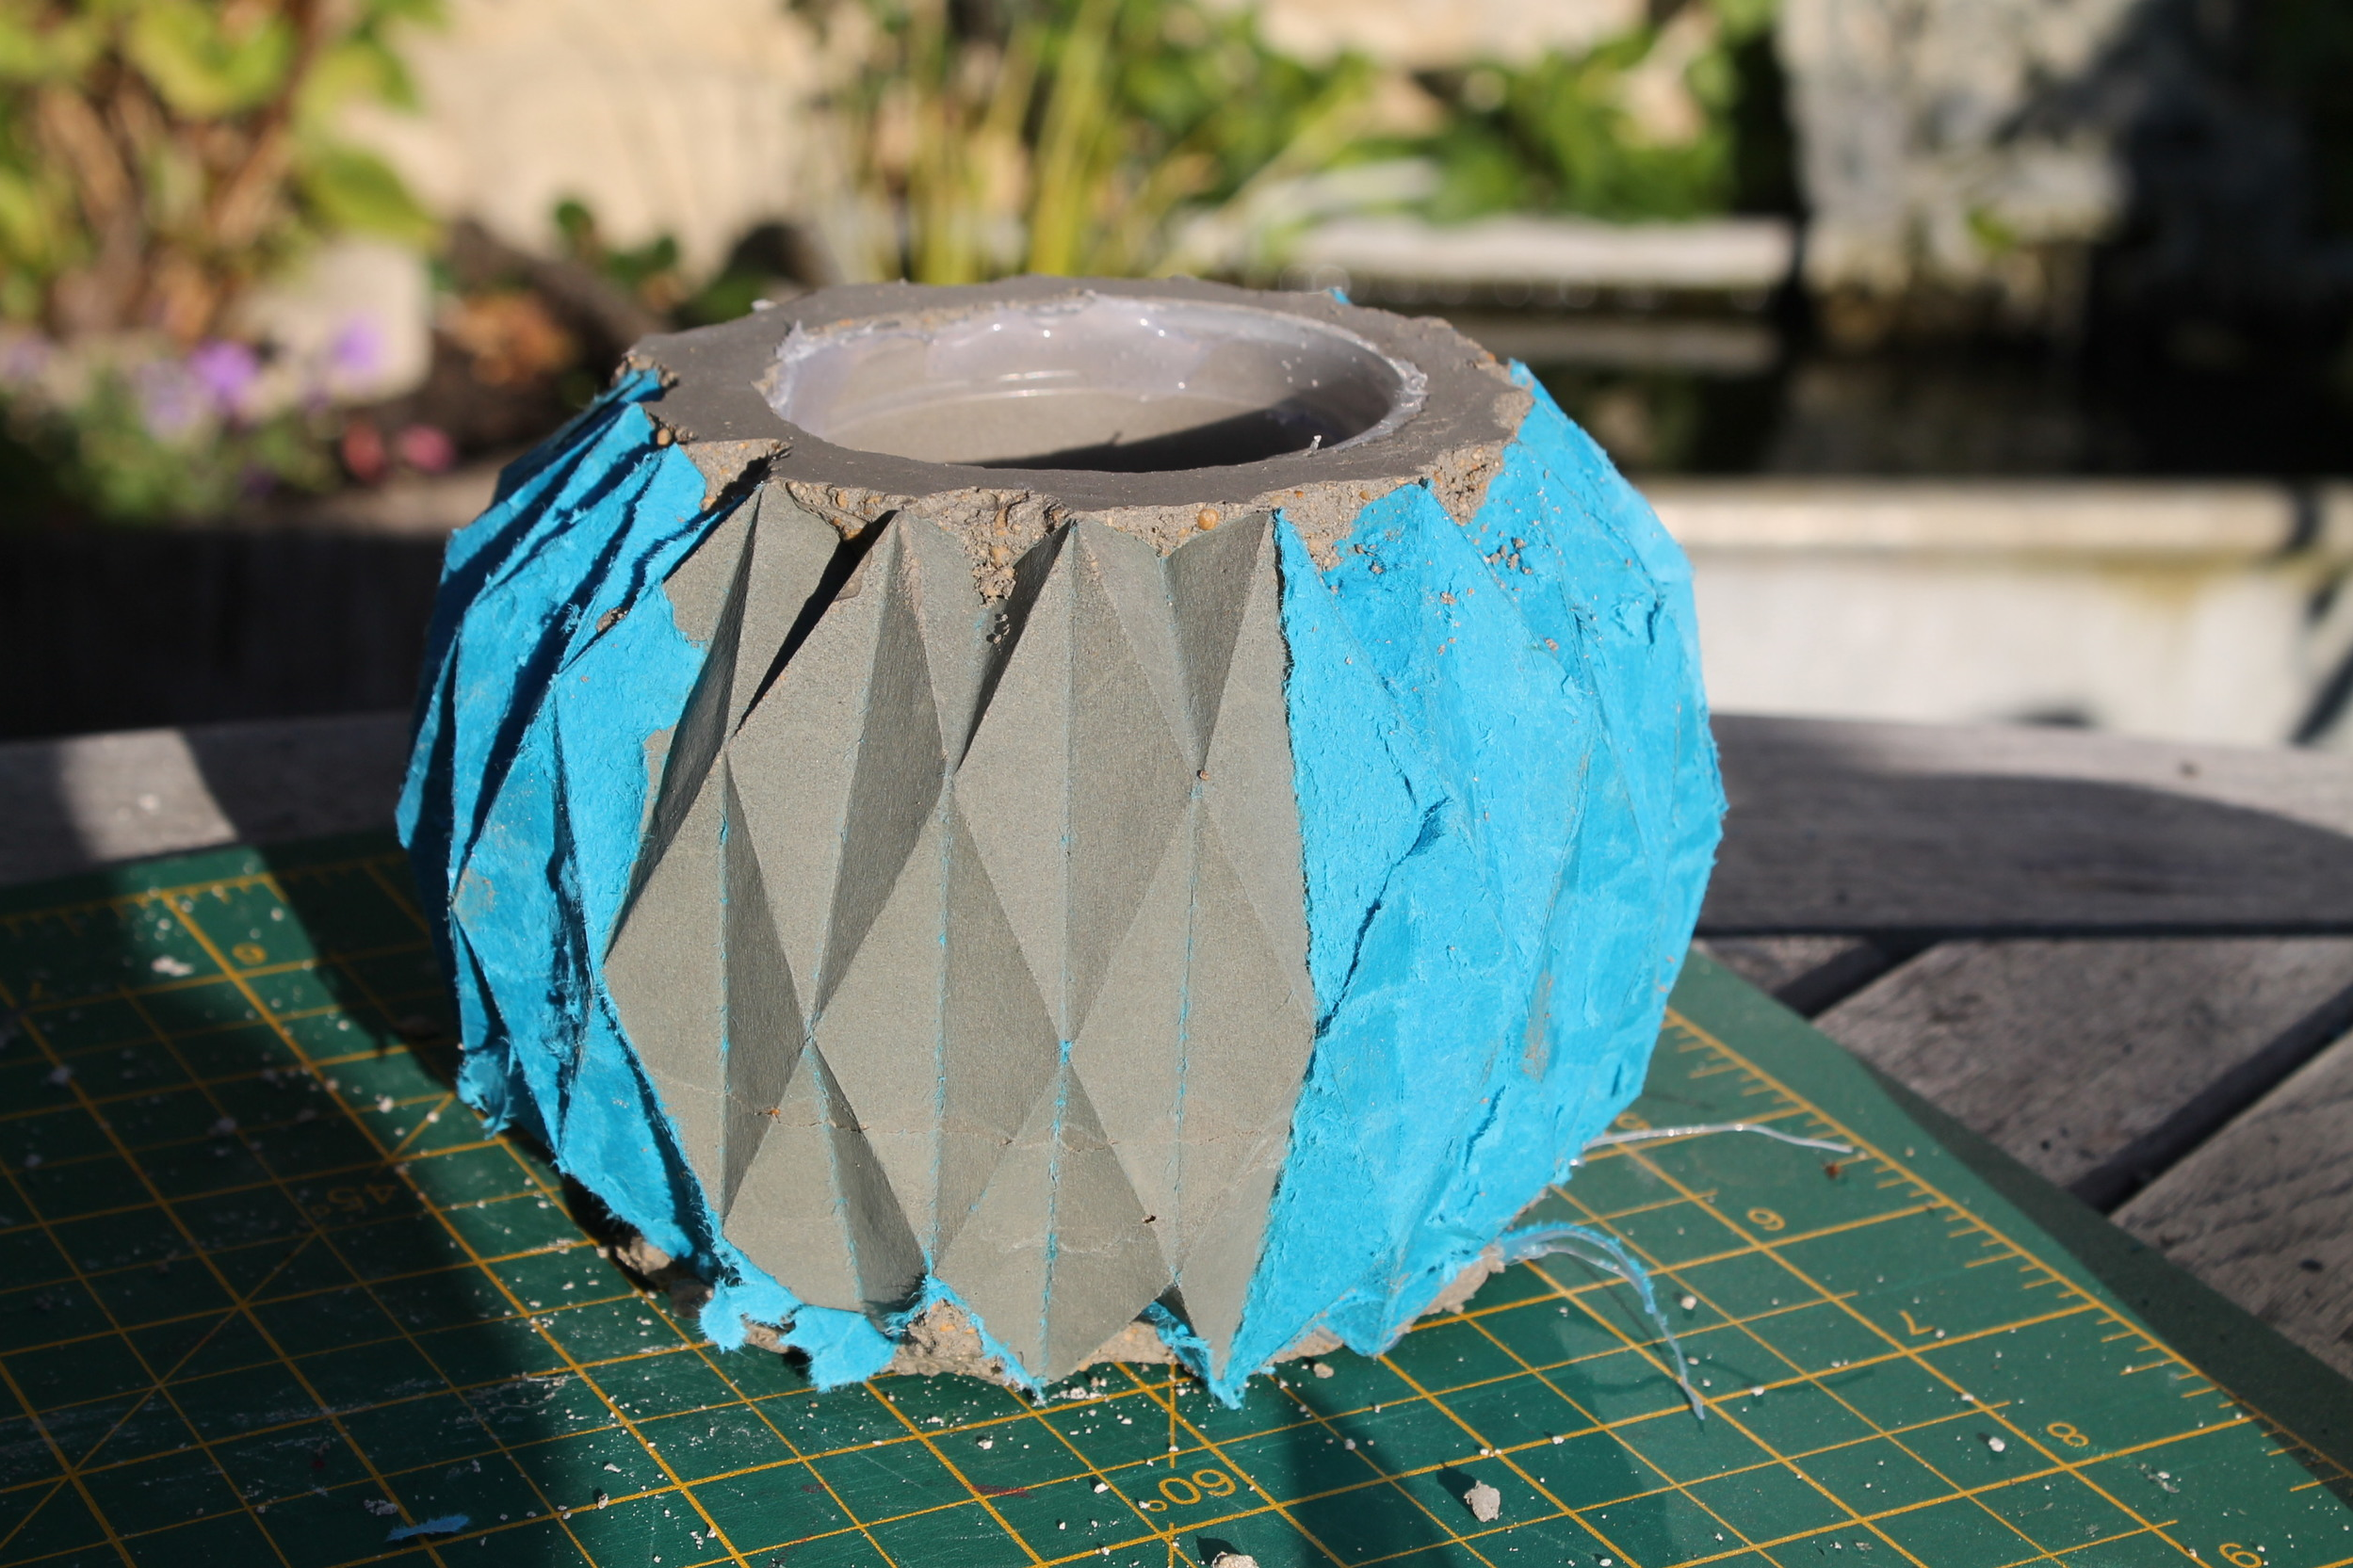 ⬆  - The concrete was mixed with Plaster of Paris. This sets the mixture fast   but allows the pot to be chiselled into its final form before it sets completely after a day.